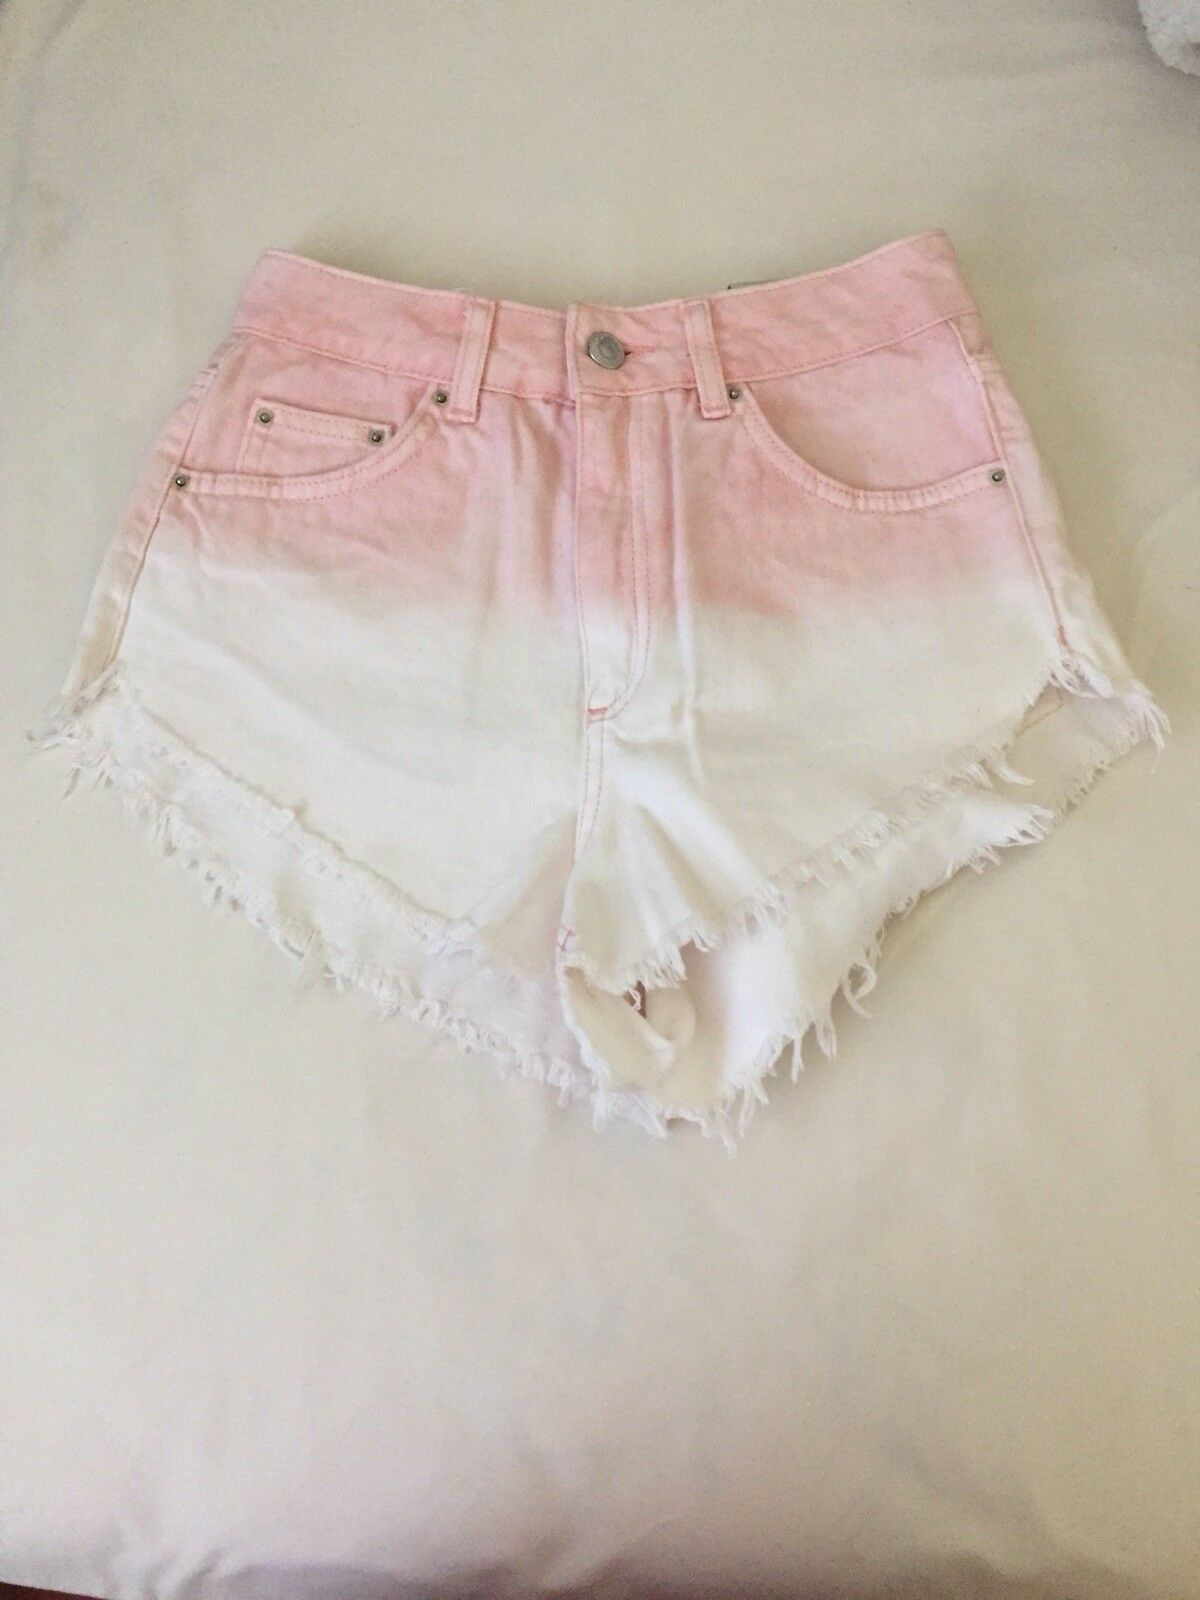 Topshop Authentic High Waisted MOM Size 4